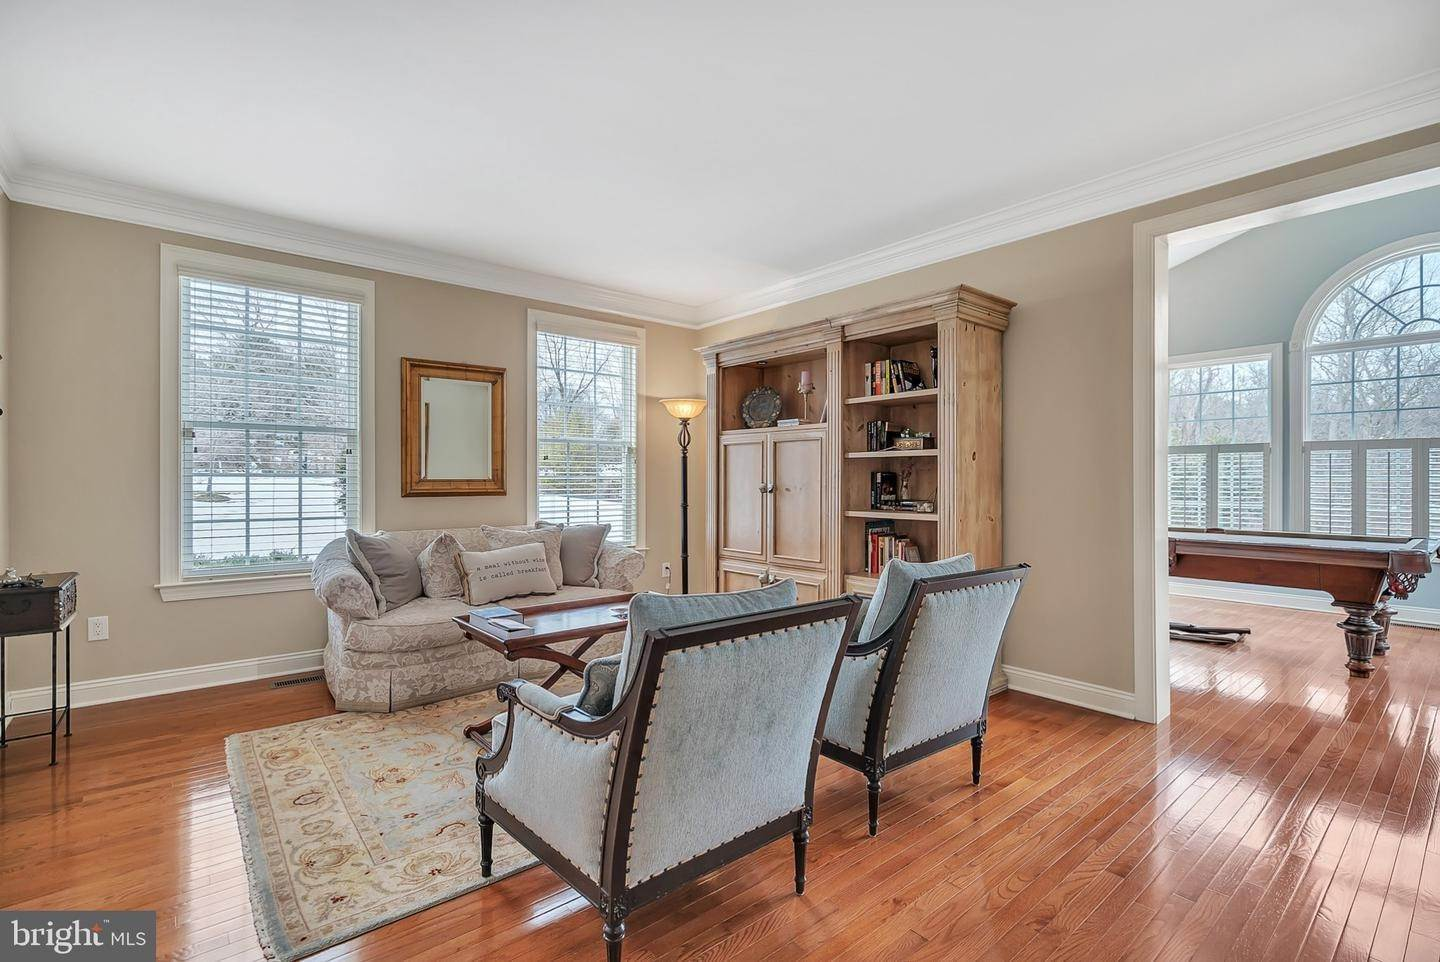 11. Detached House for Sale at 1511 BRAY Lane Washington Crossing, Pennsylvania 18977 United States